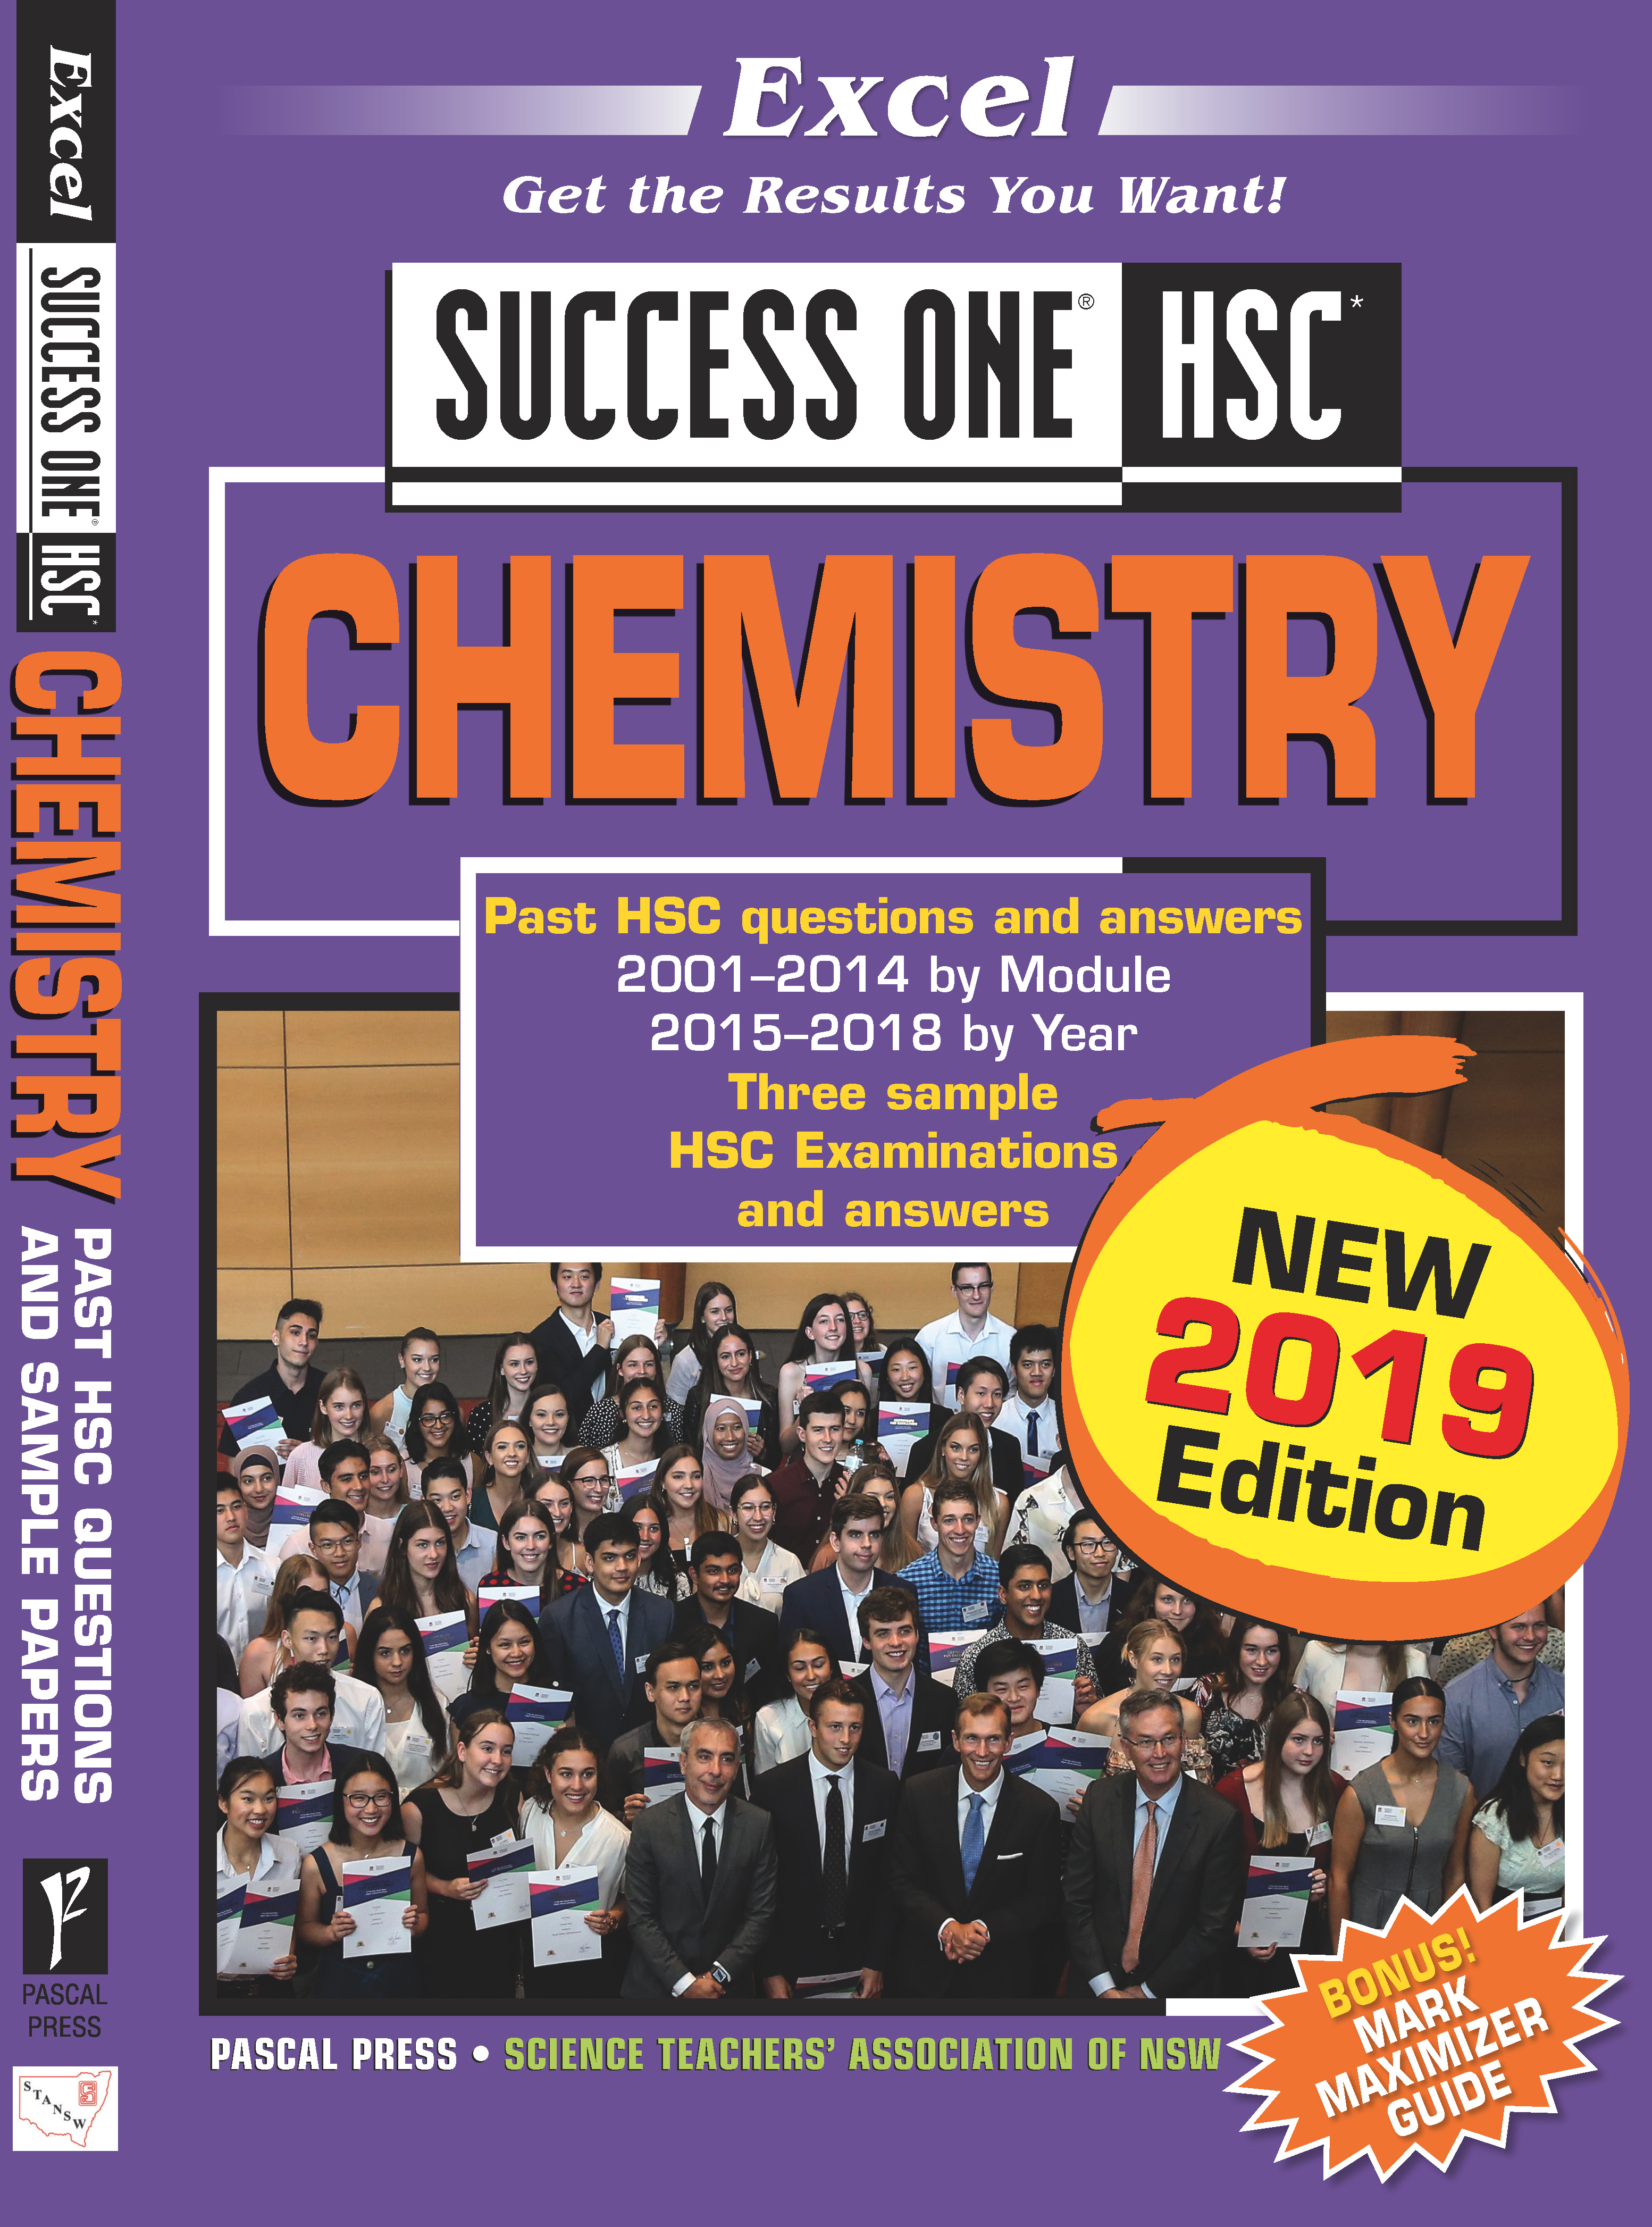 Excel Success One HSC Chemistry